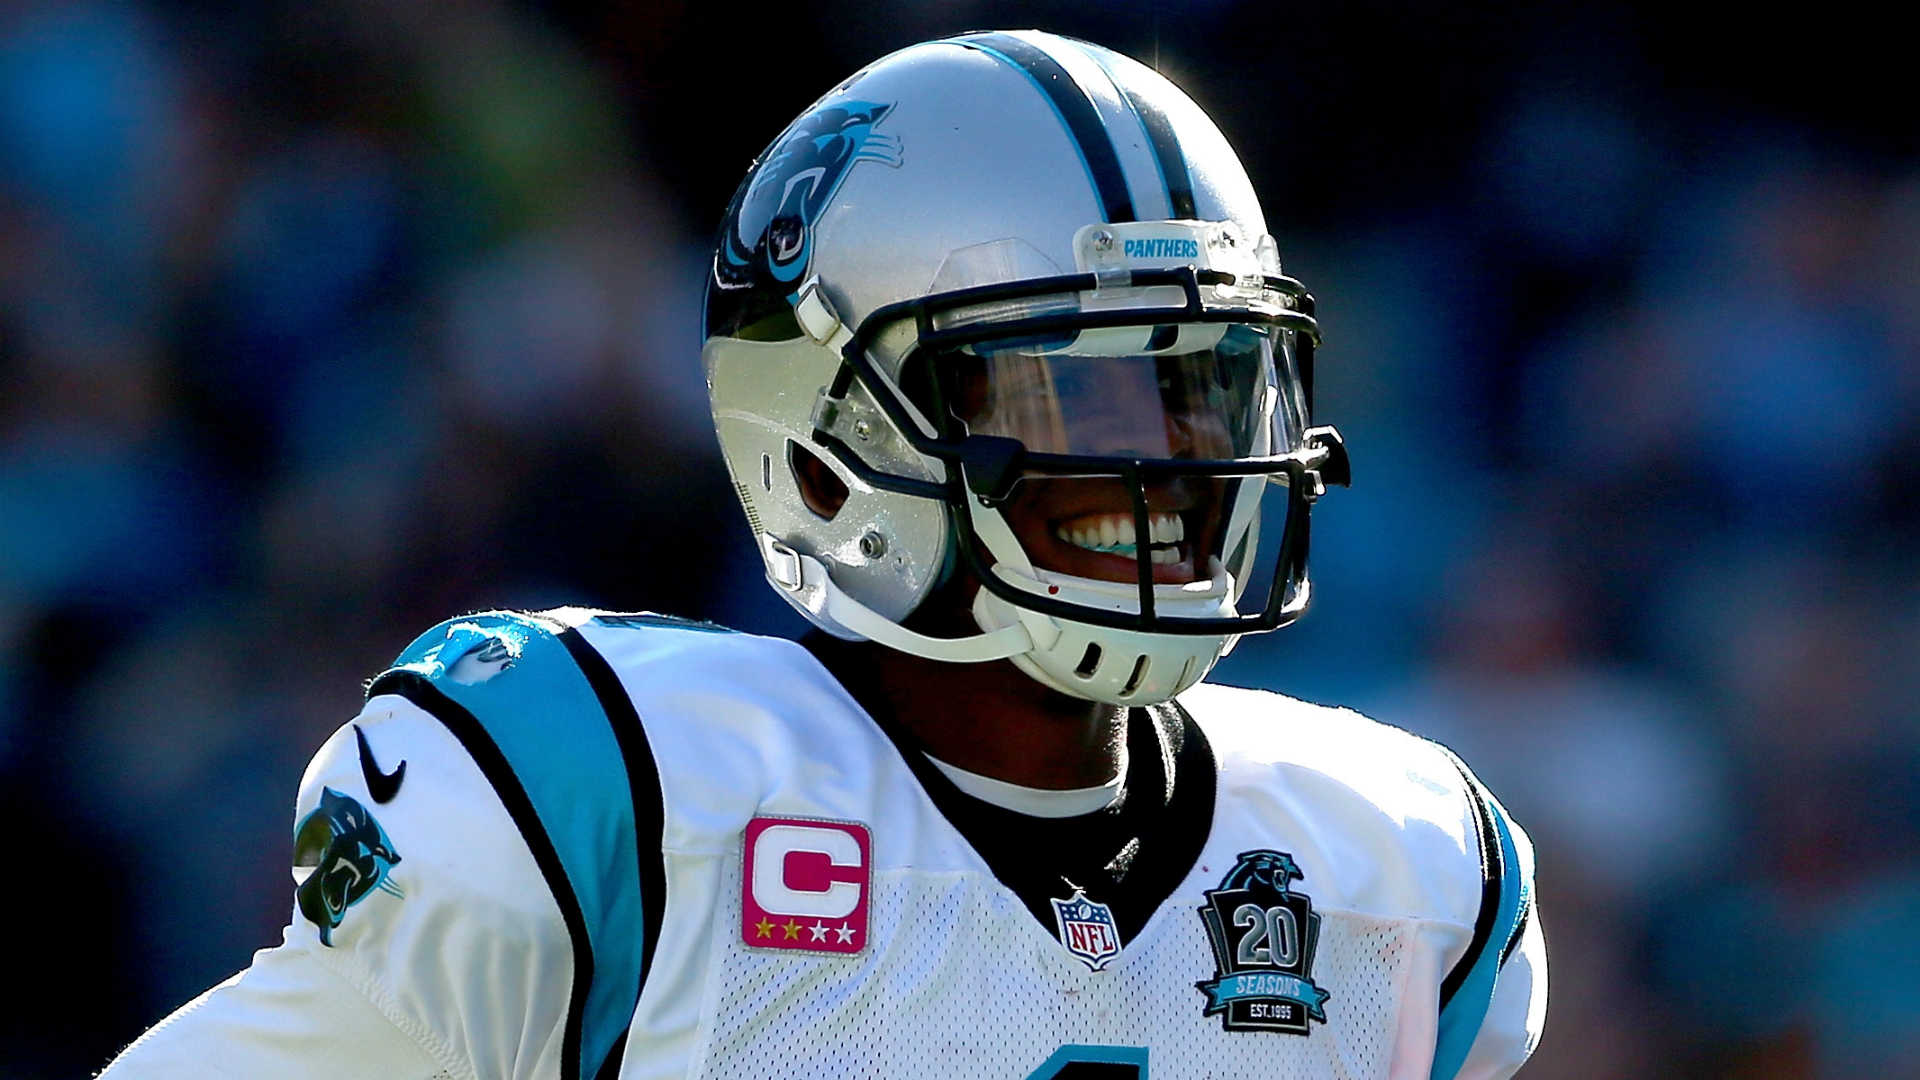 Monday night action report – Vegas books need a Panthers cover